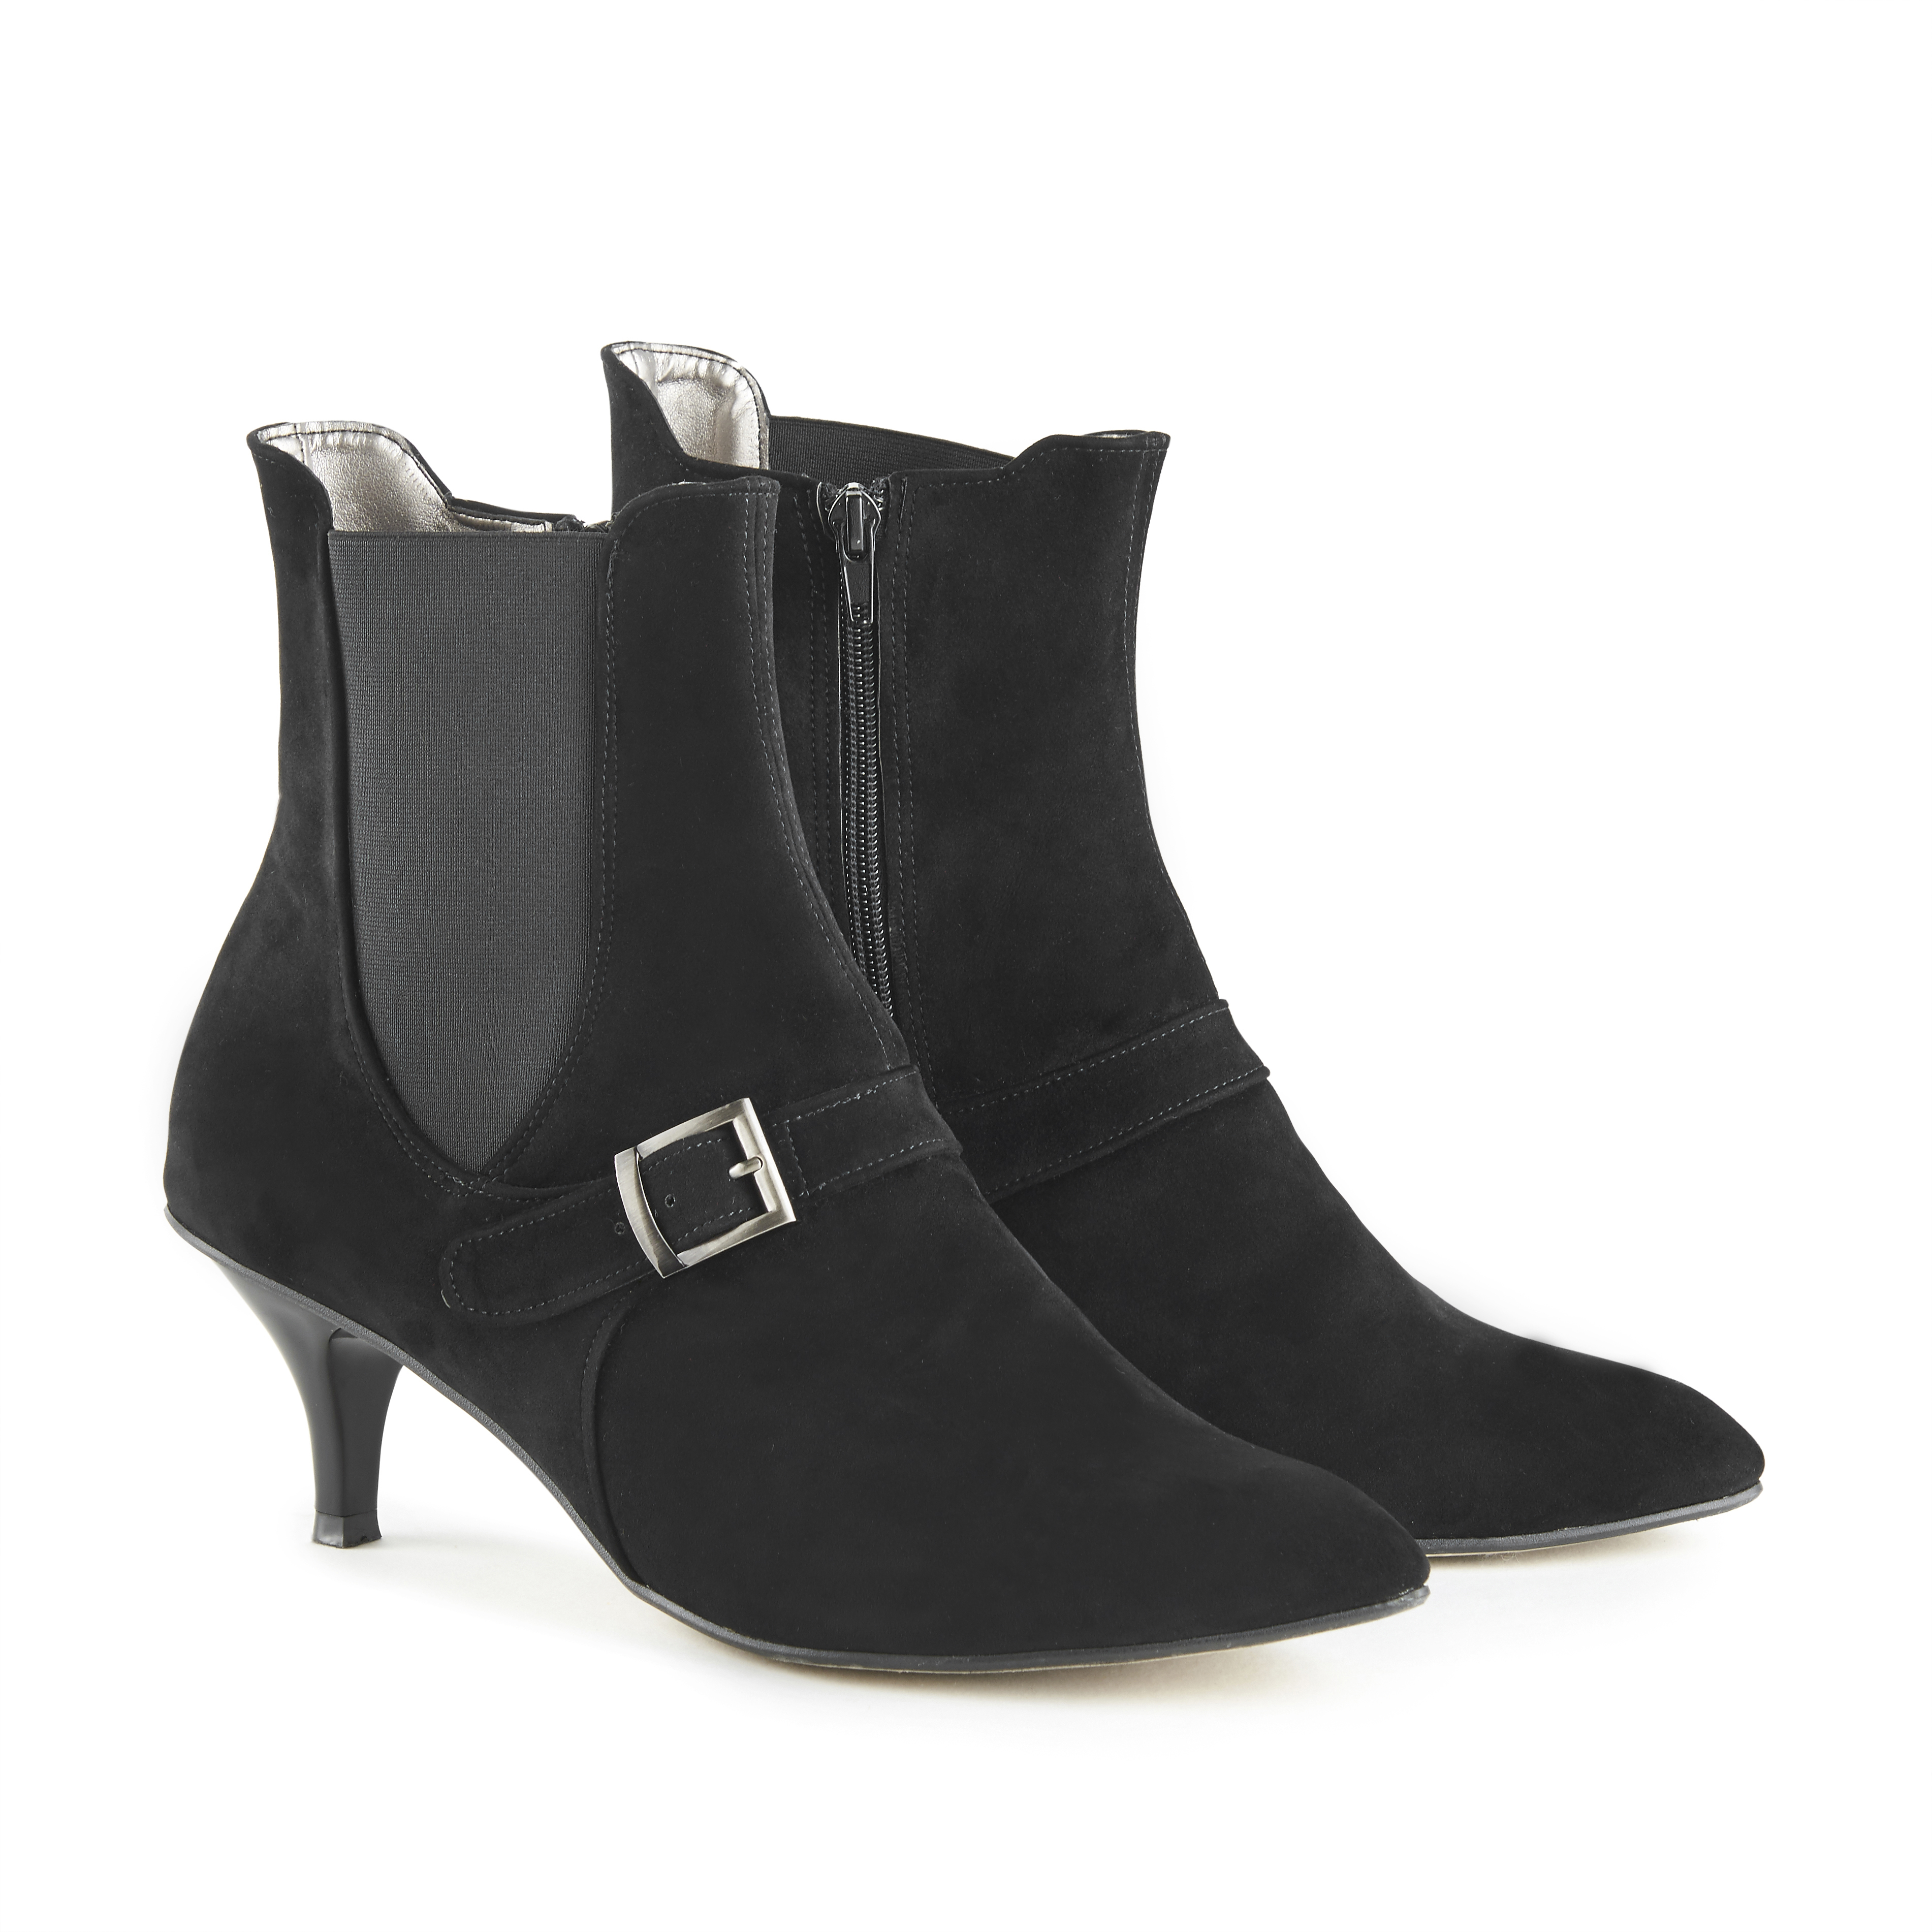 Lola Black Suede Ankle Boots